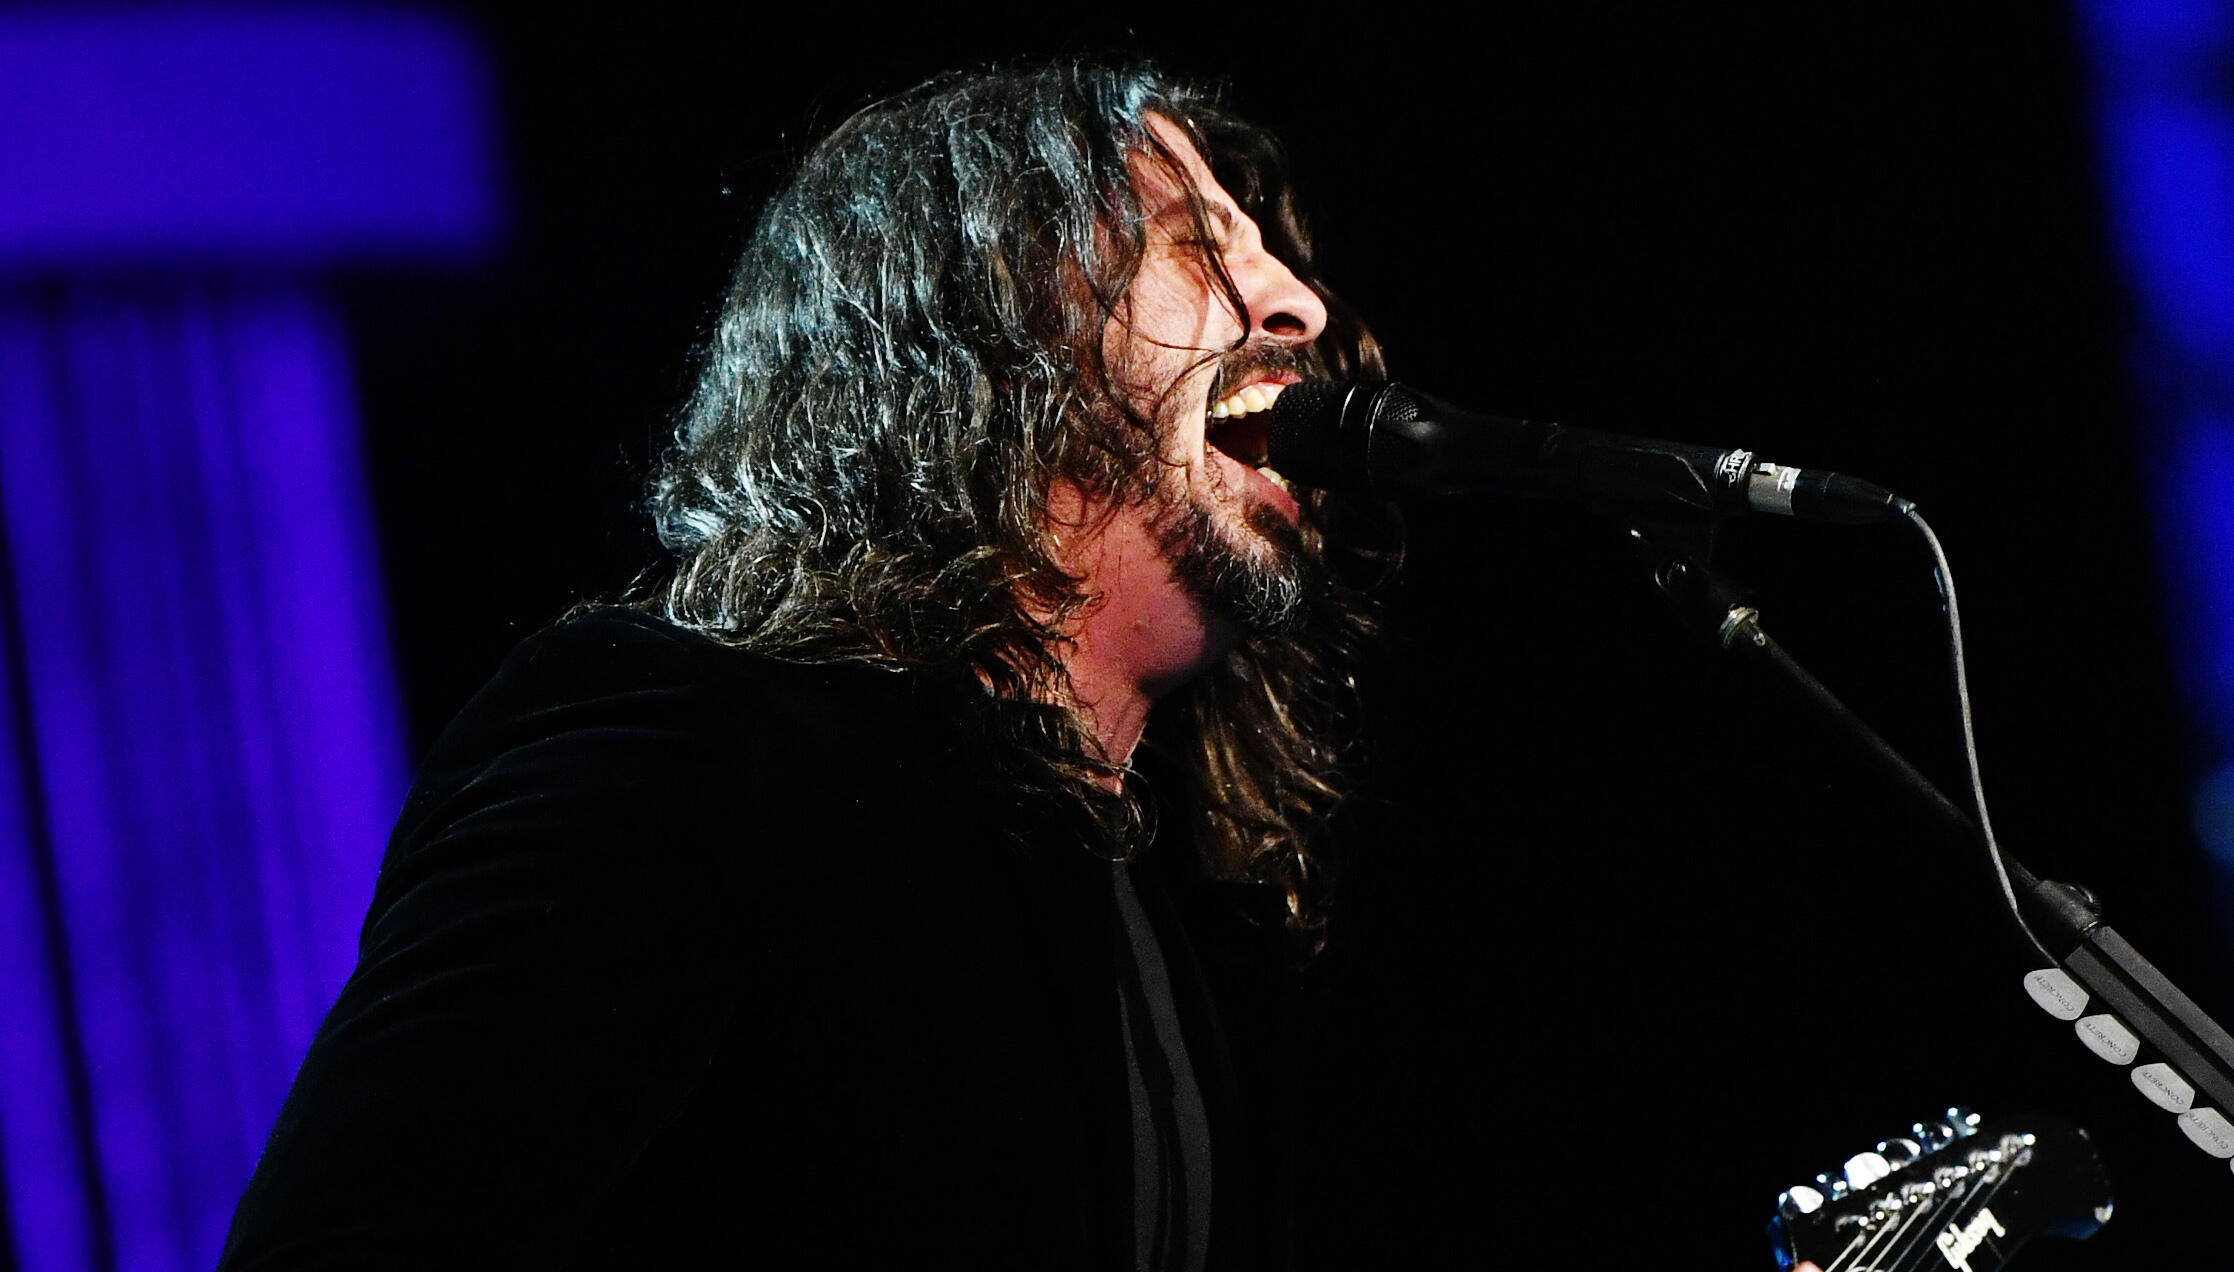 Dave Grohl Unleashes Furious Cover Of Beastie Boys' 'Sabotage' For Hanukkah